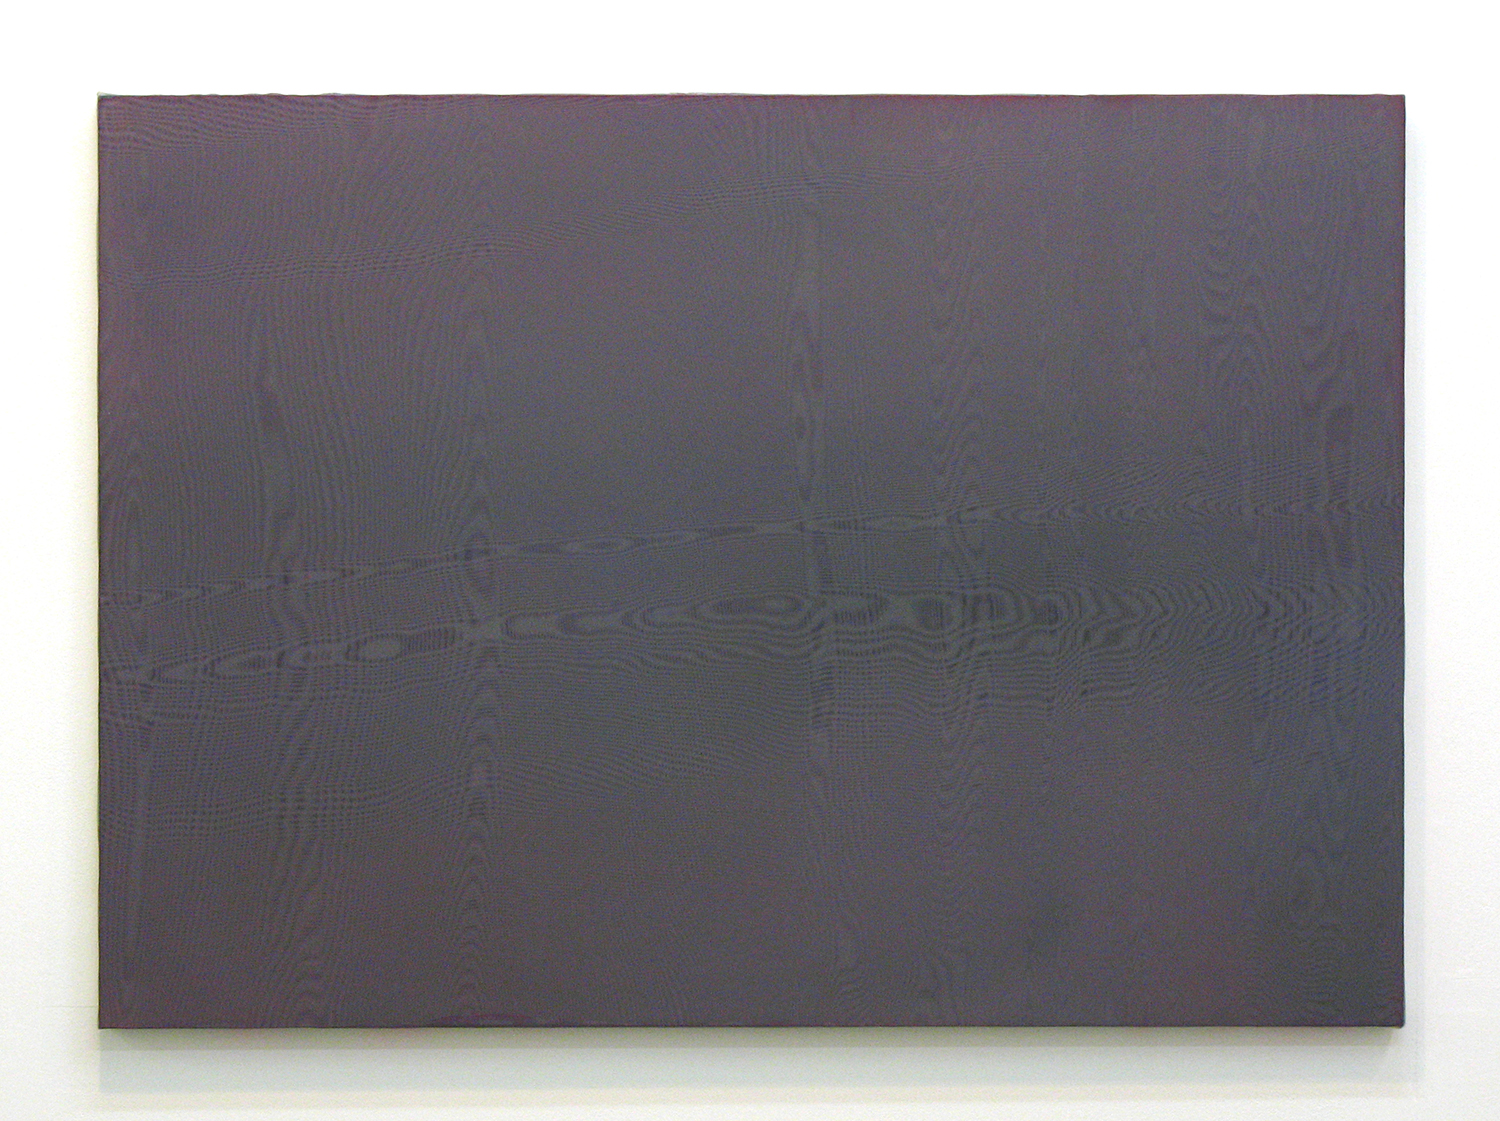 afterglow #2|残光 #2|panel, stainless steel sheet, glass organdy, acrylic|594 x 840 mm|2008